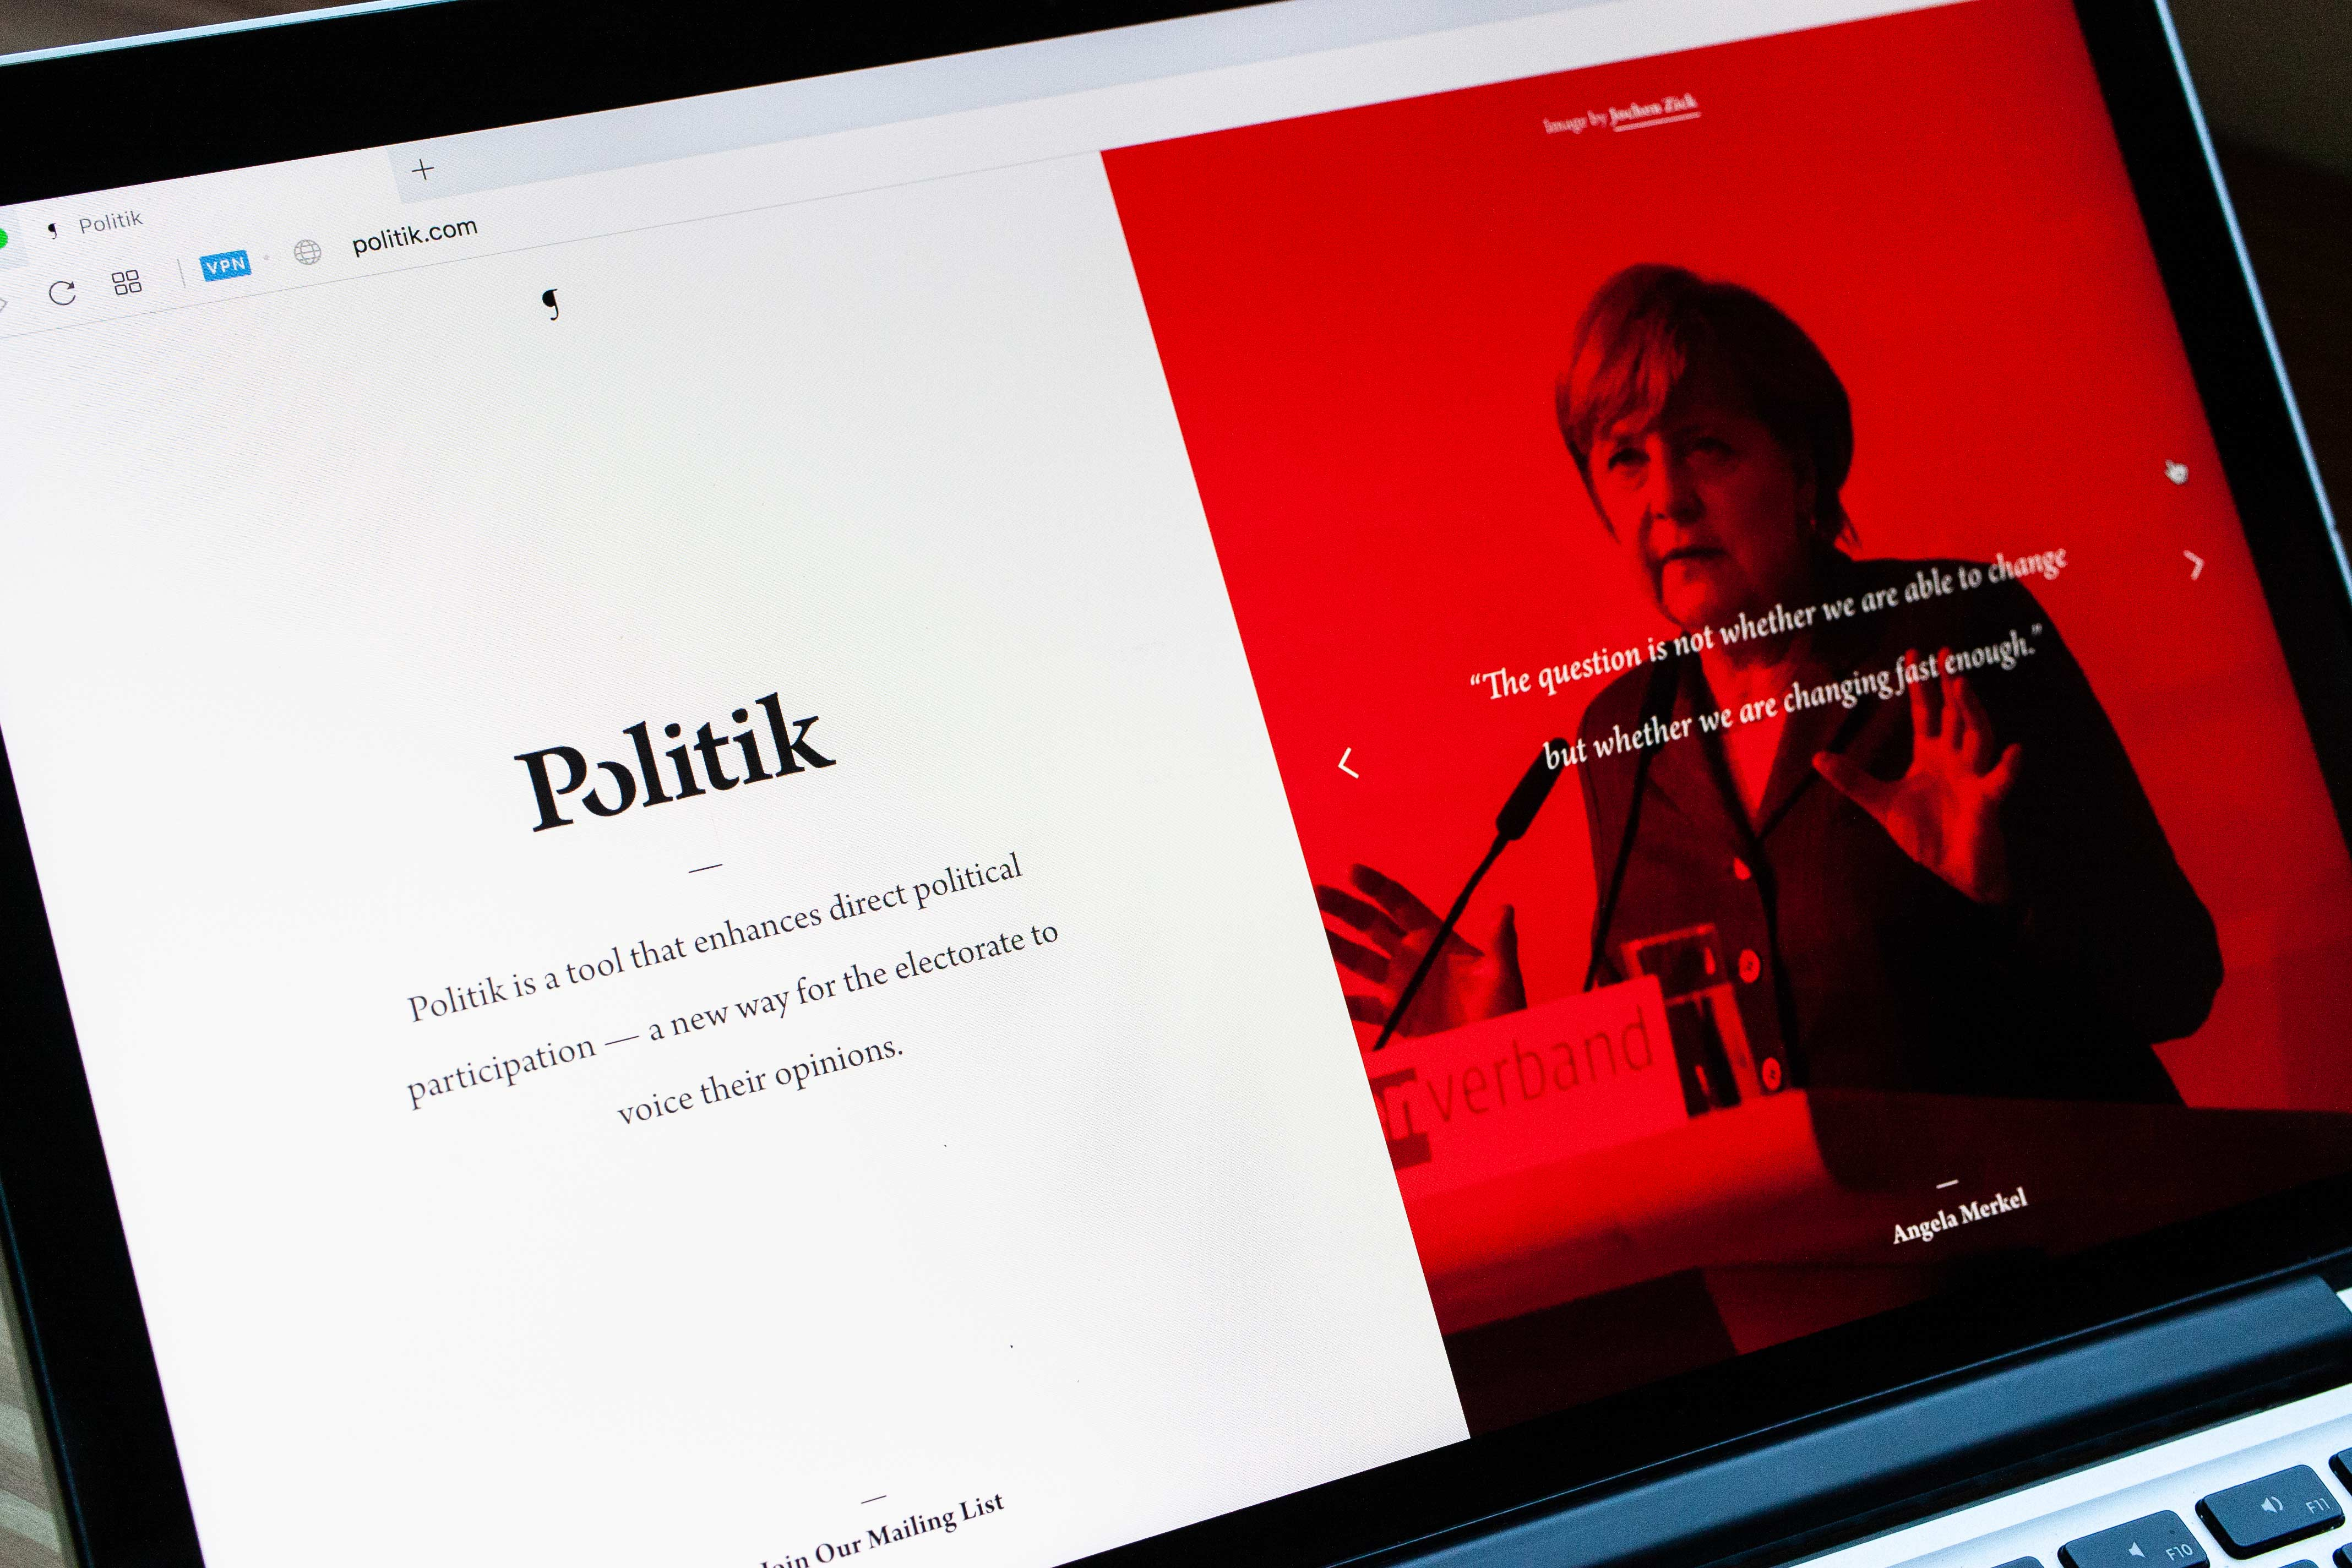 Neon Red Politik page featuring photography and quote from Angela Merkel — by Yagnyuk.